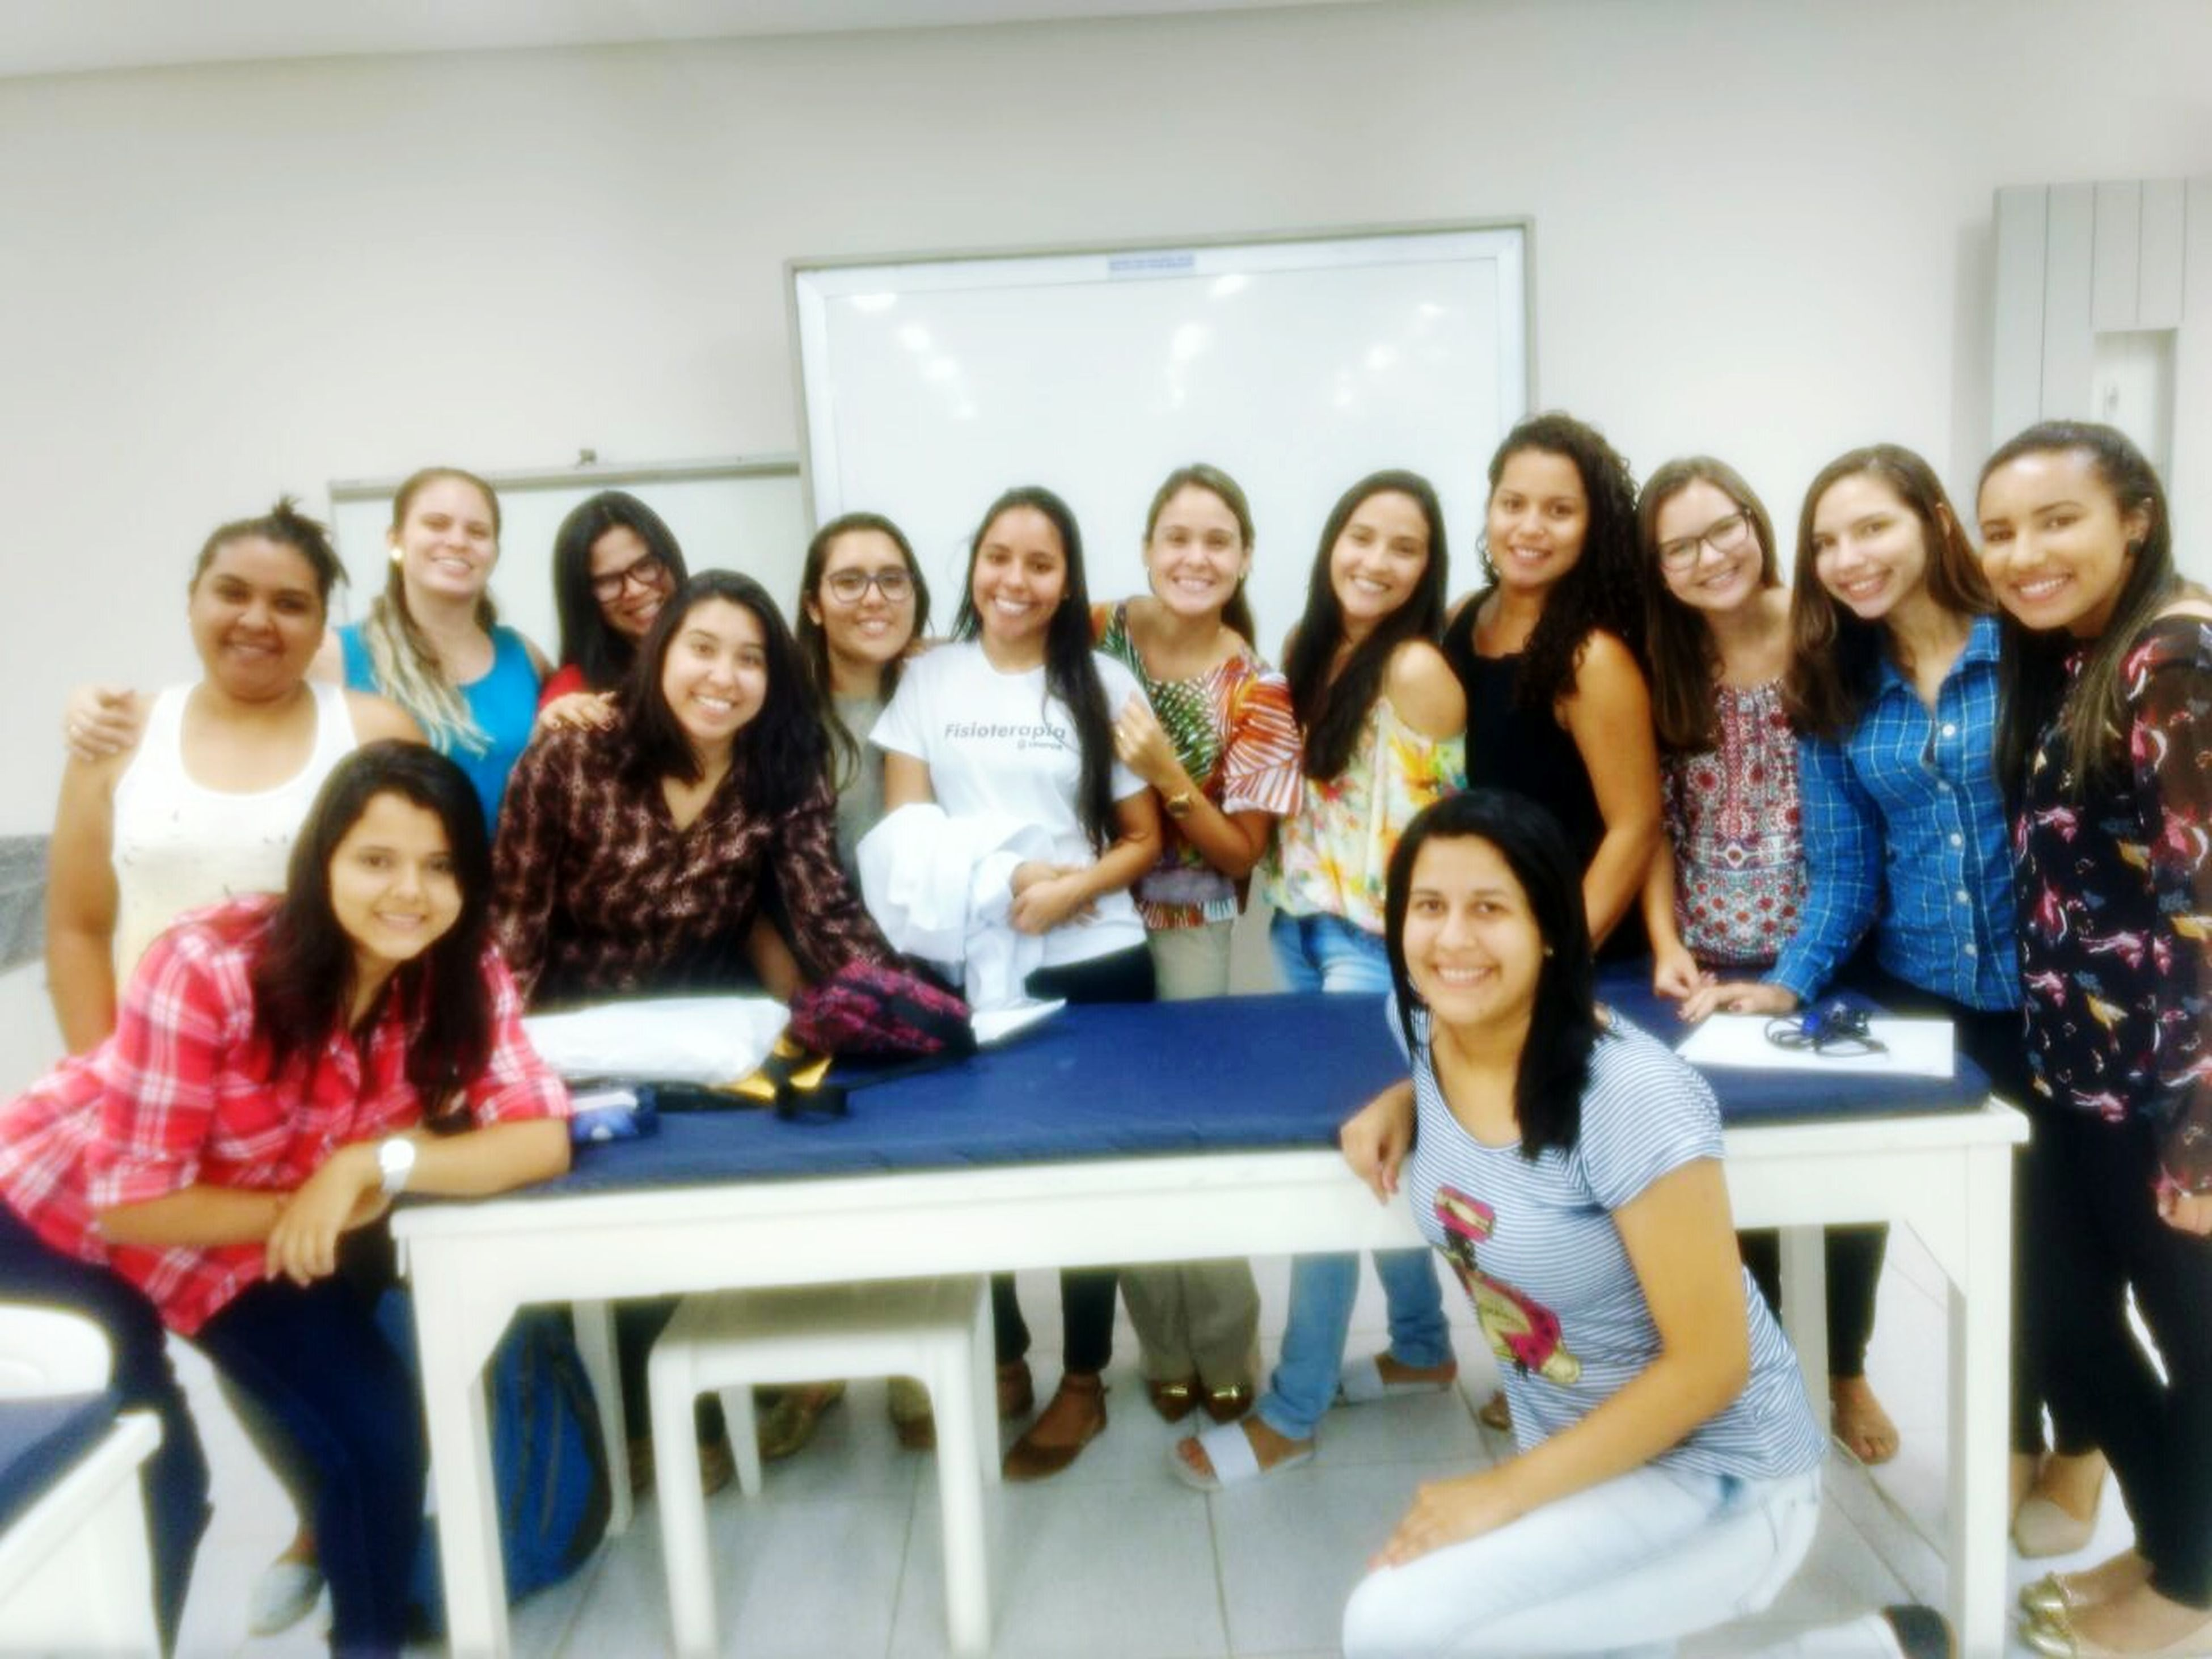 looking at camera, smiling, portrait, happiness, classroom, medium group of people, indoors, desk, sitting, student, cheerful, learning, education, real people, friendship, day, young adult, young women, adult, people